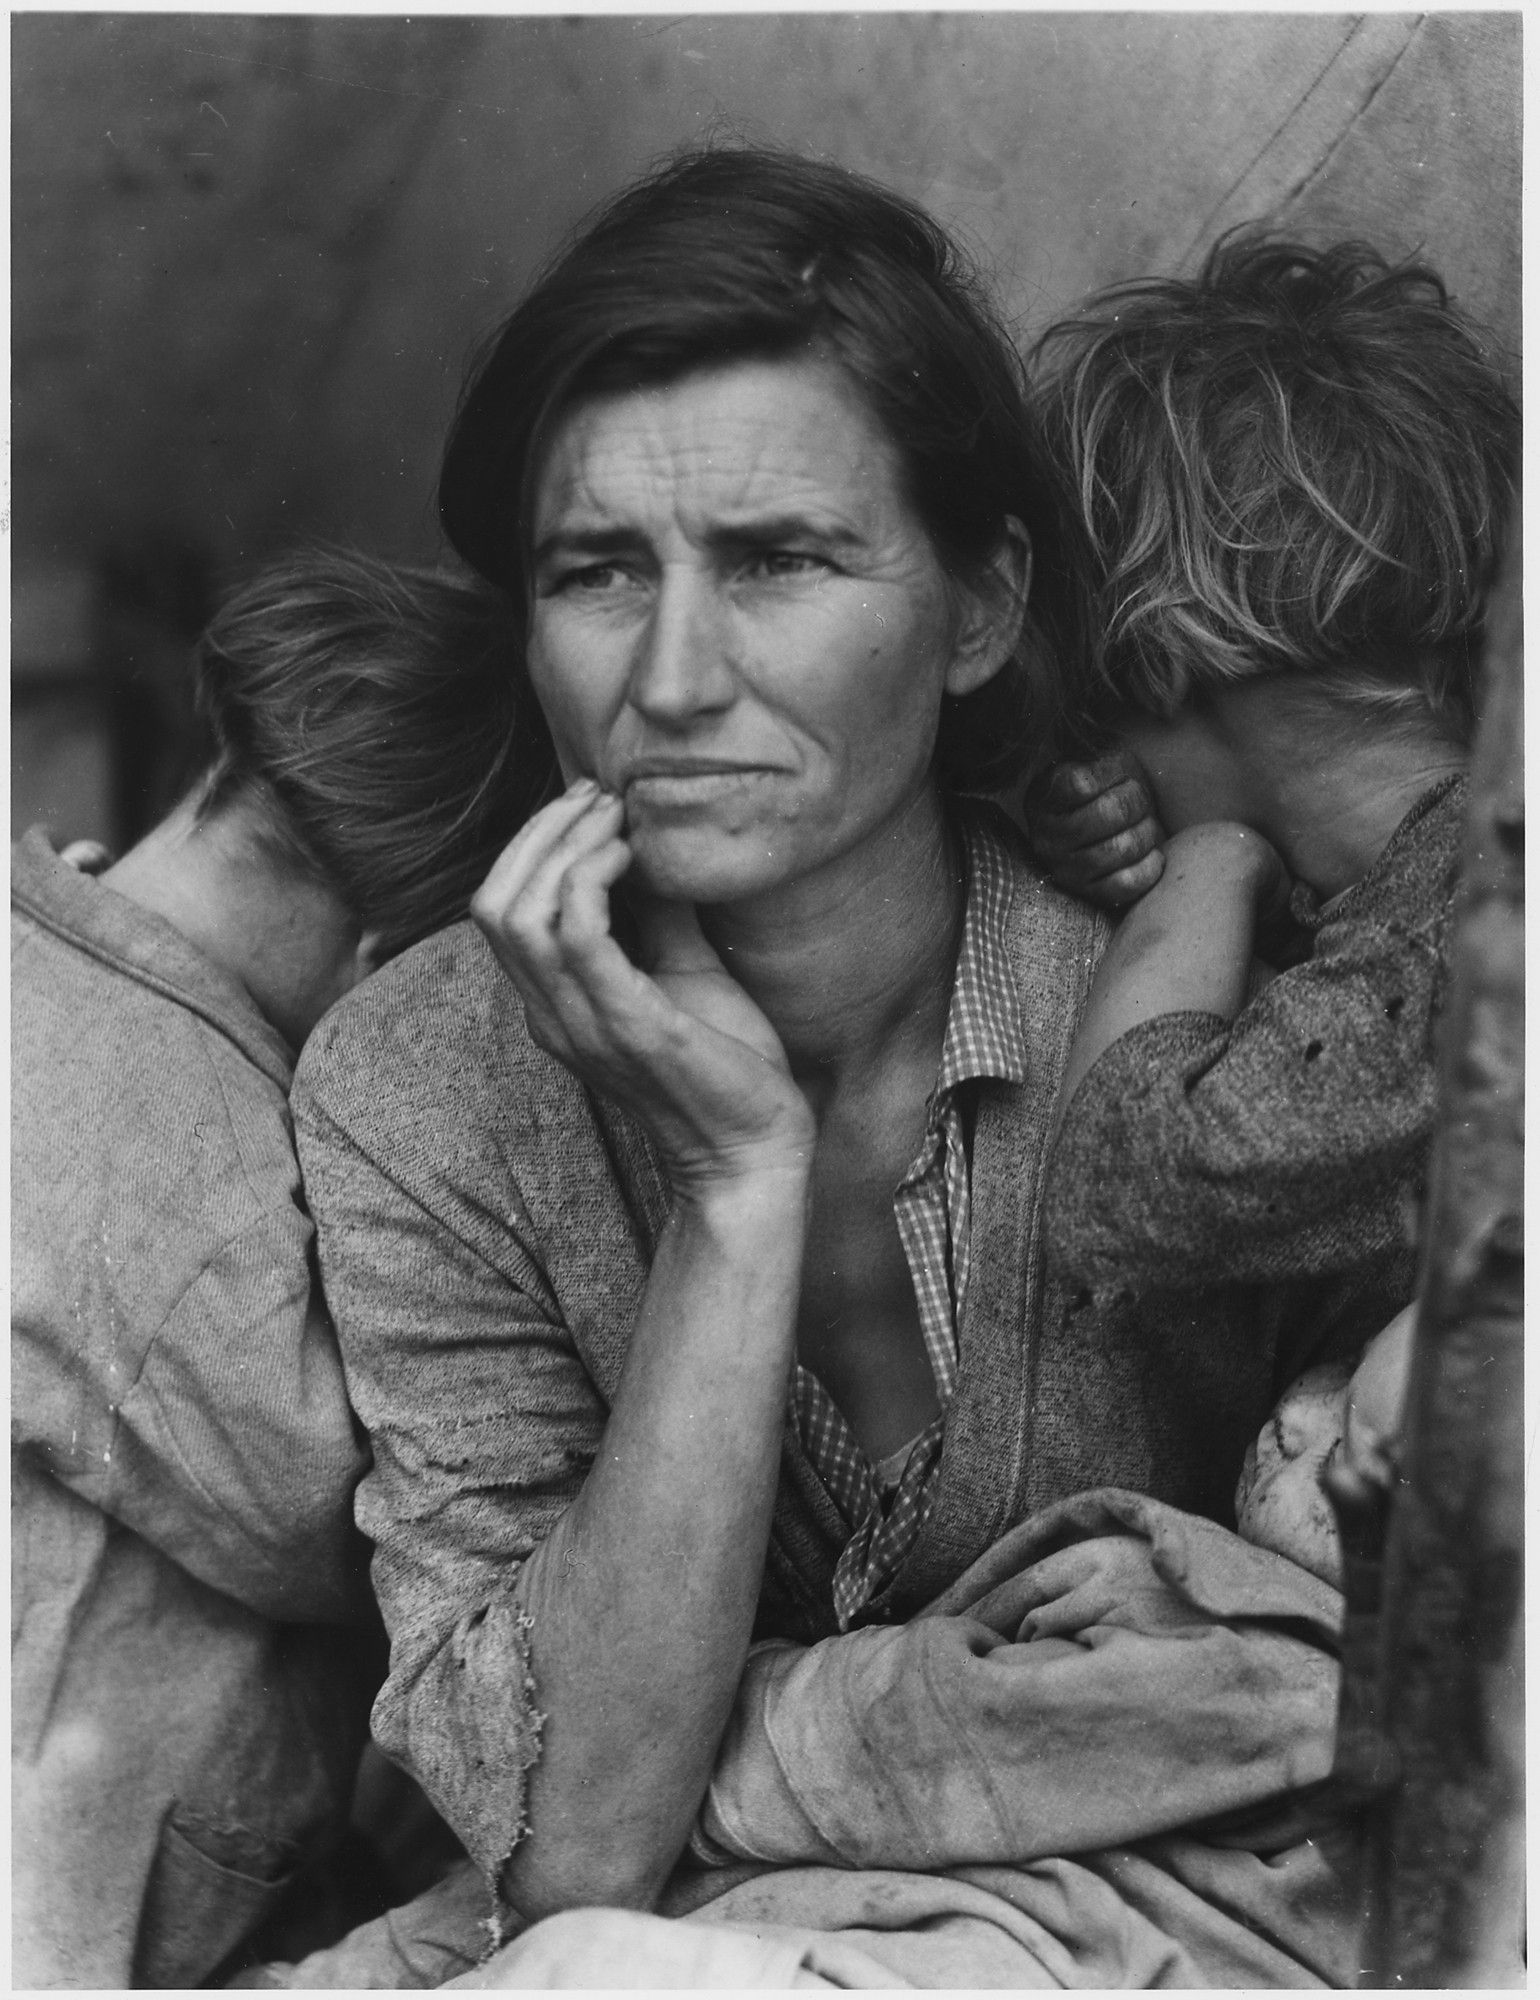 farm security administration destitute pea pickers in california farm security administration destitute pea pickers in california mother of seven children